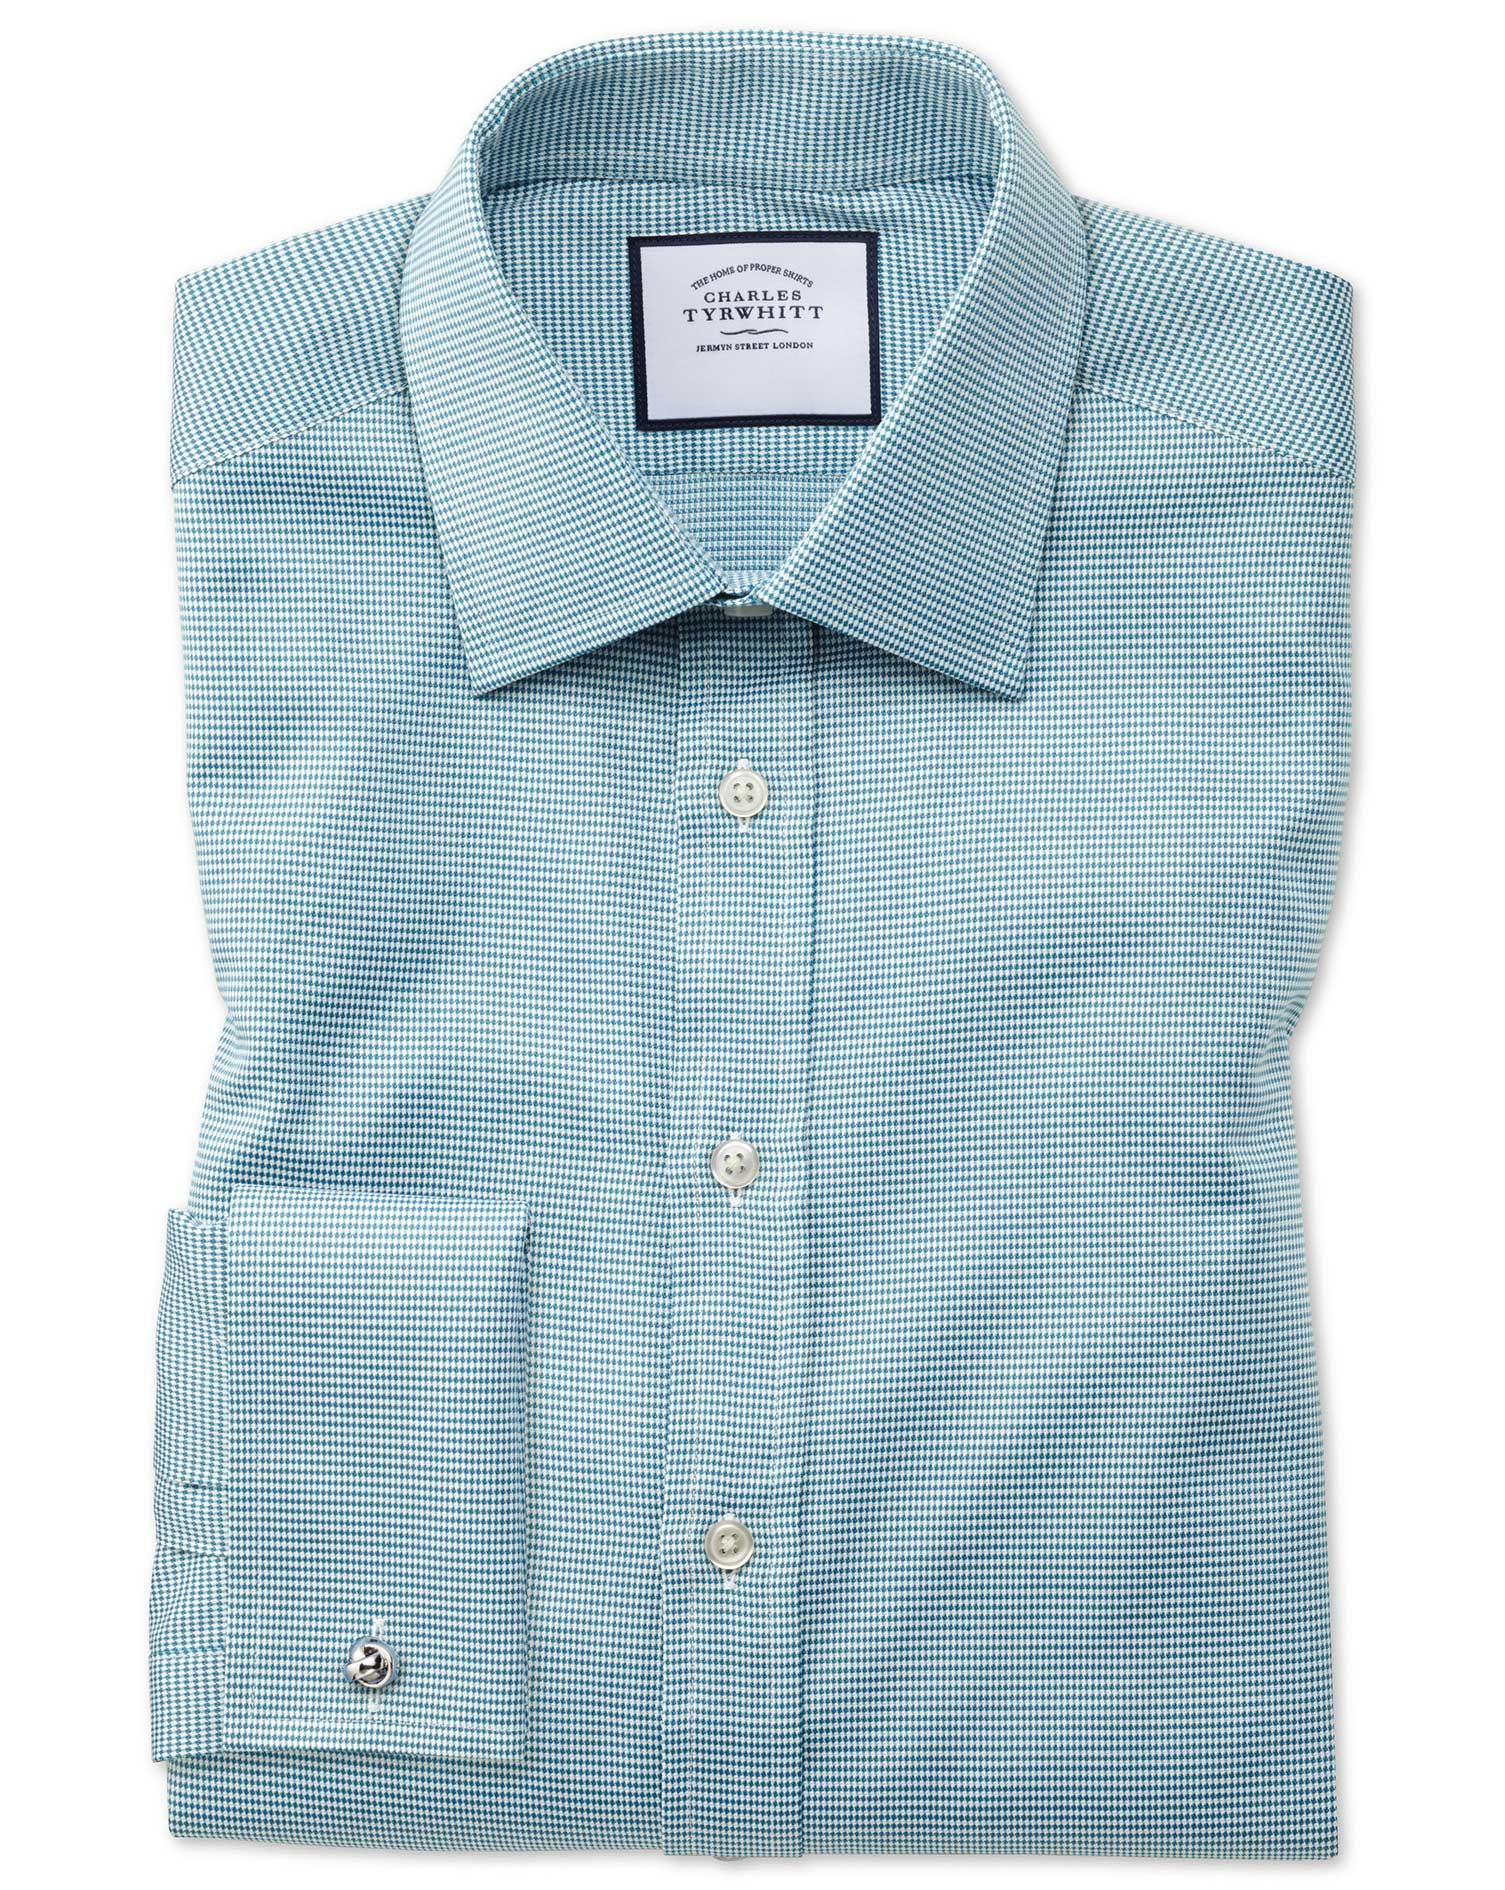 Classic Fit Teal Small Puppytooth Egyptian Cotton Formal Shirt Double Cuff Size 17/34 by Charles Tyr